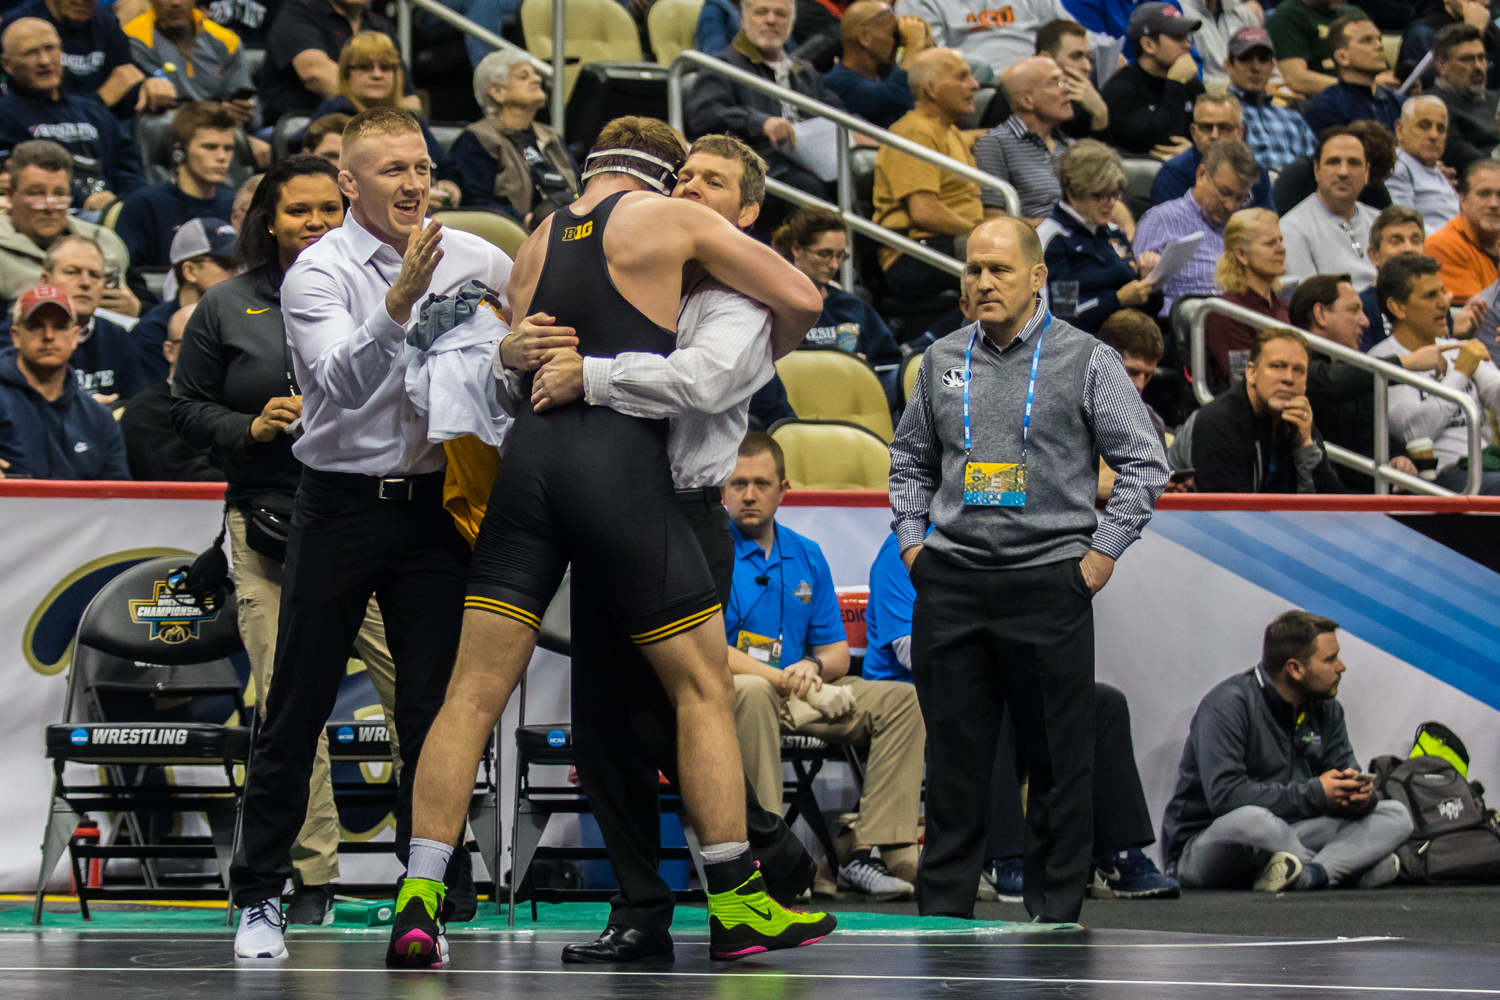 Iowa%E2%80%99s+197-pound+Jacob+Warner+hugs+head+coach+Tom+Brands+after+defeating+Virginia+Tech%E2%80%99s+Tom+Sleigh+during+the+fourth+session+of+the+2019+NCAA+D1+Wrestling+Championships+at+PPG+Paints+Arena+in+Pittsburgh%2C+PA+on+Friday%2C+March+22%2C+2019.+Warner+won+by+decision%2C+6-2.